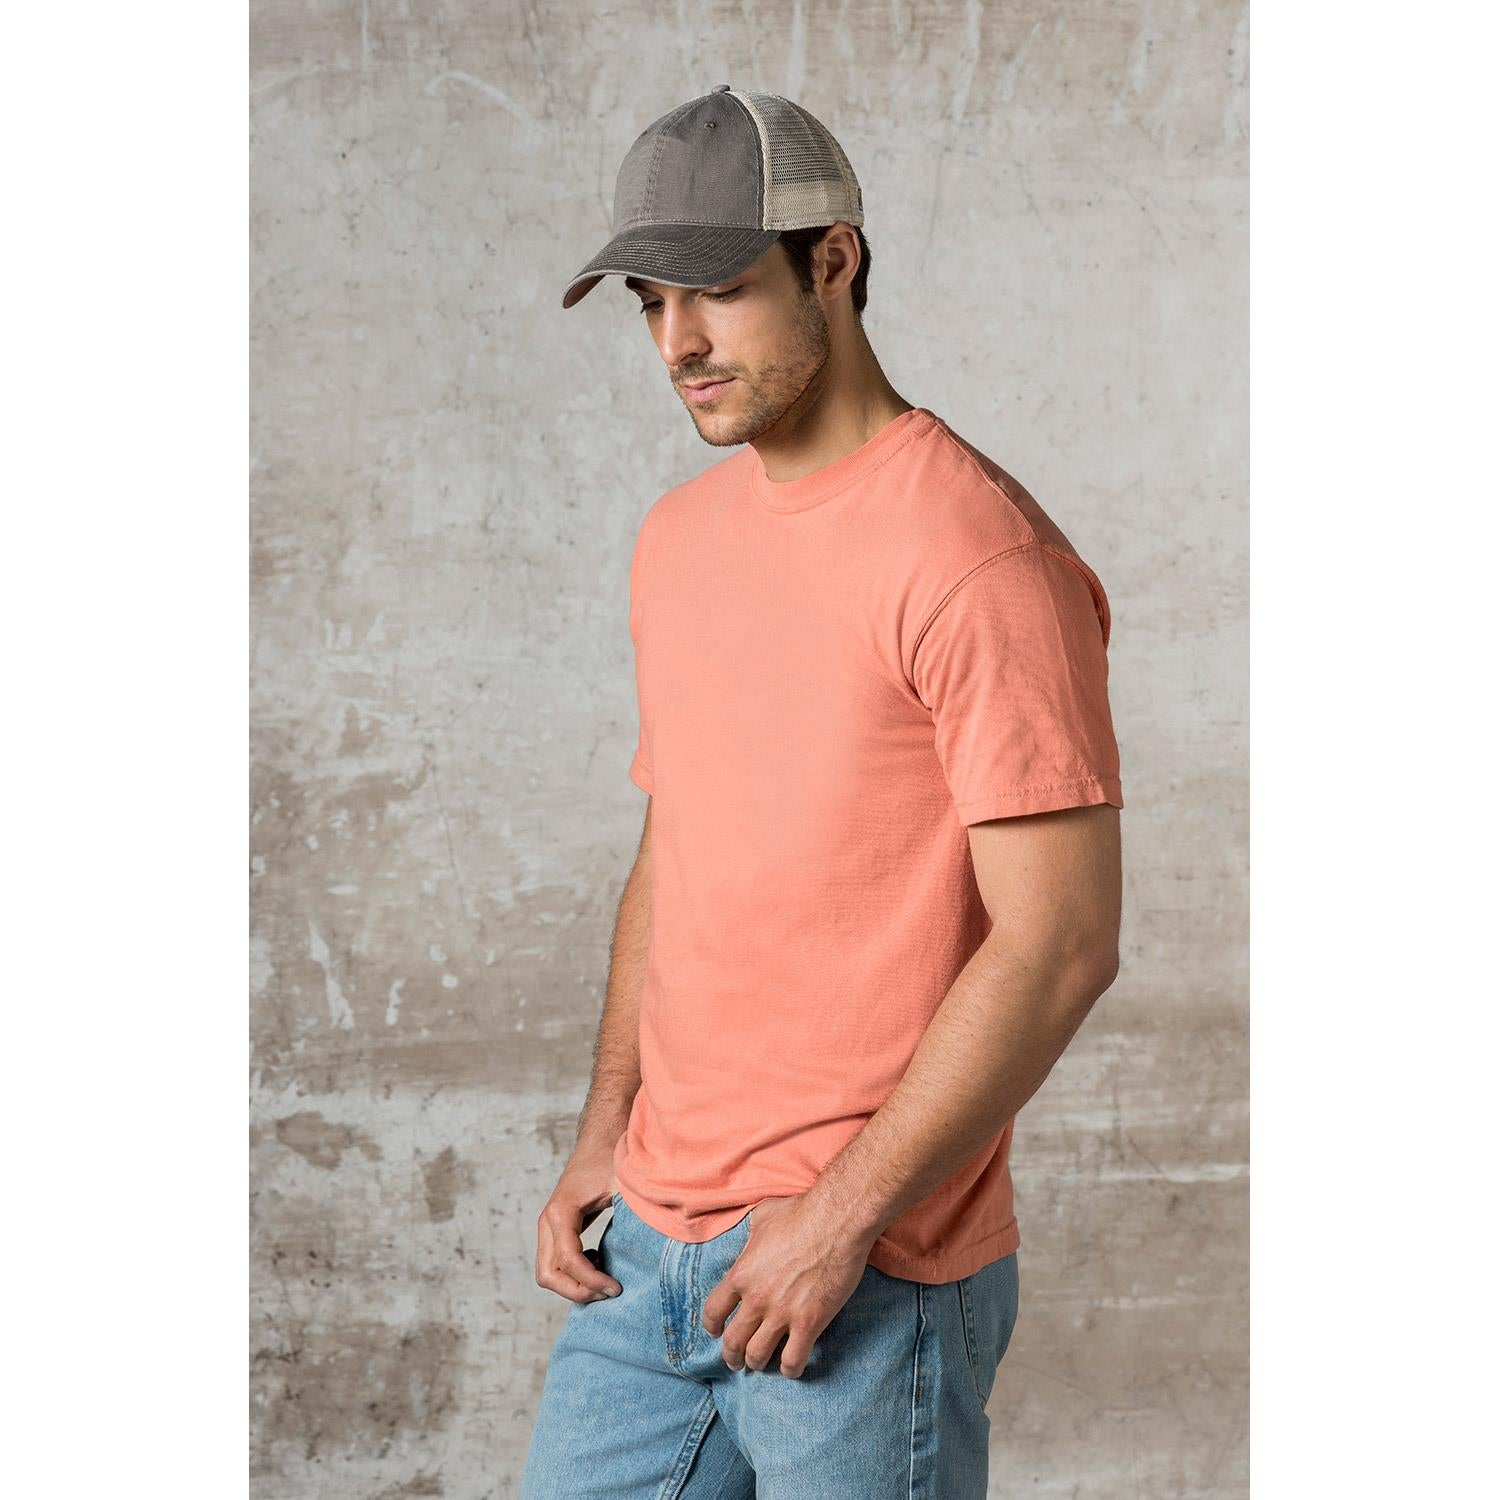 C1717 - Comfort Colors Ringspun Tee Shirt